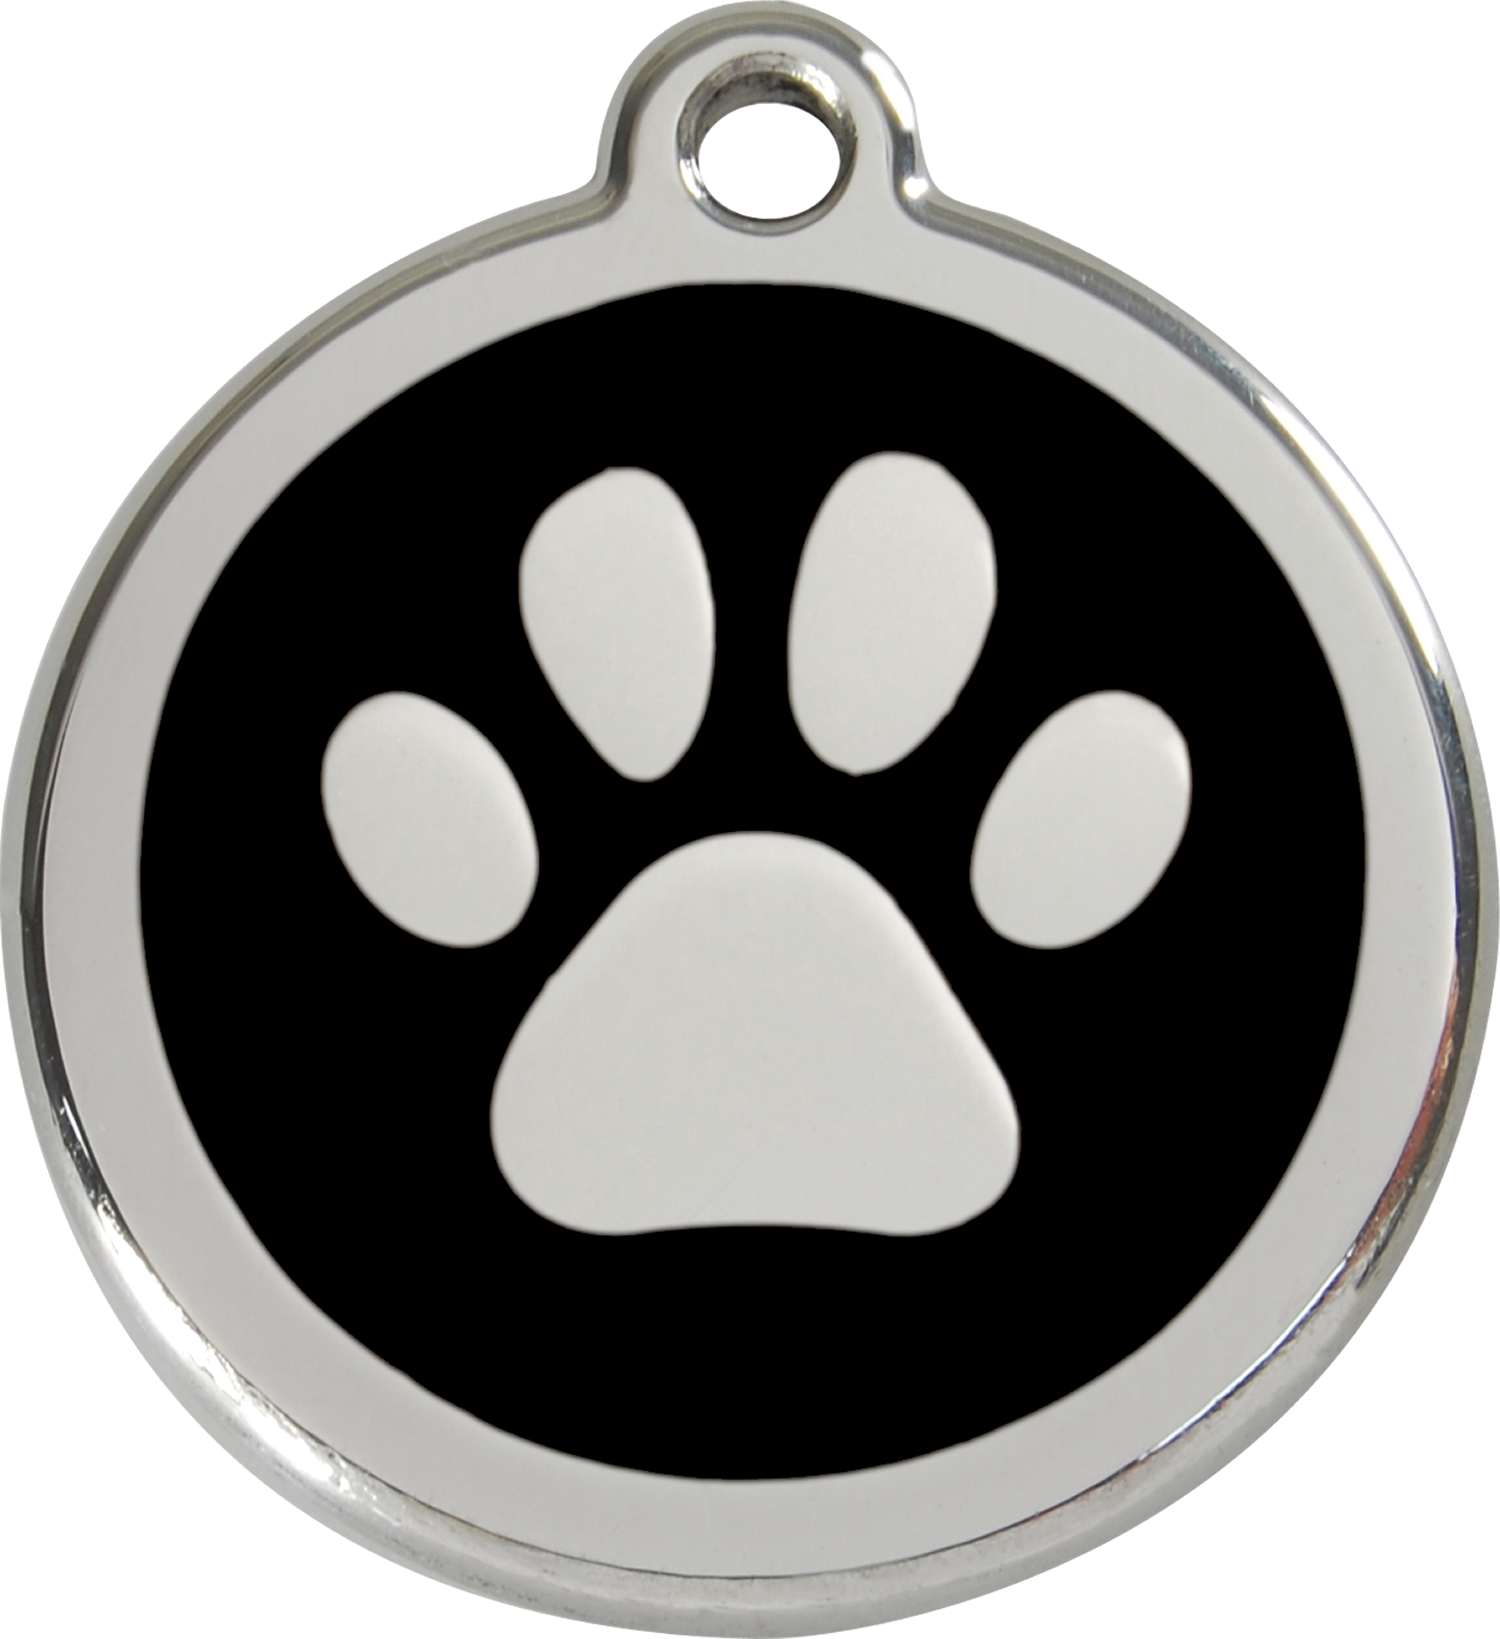 Dog Paw Print Png Red dingo enamel tag paw print